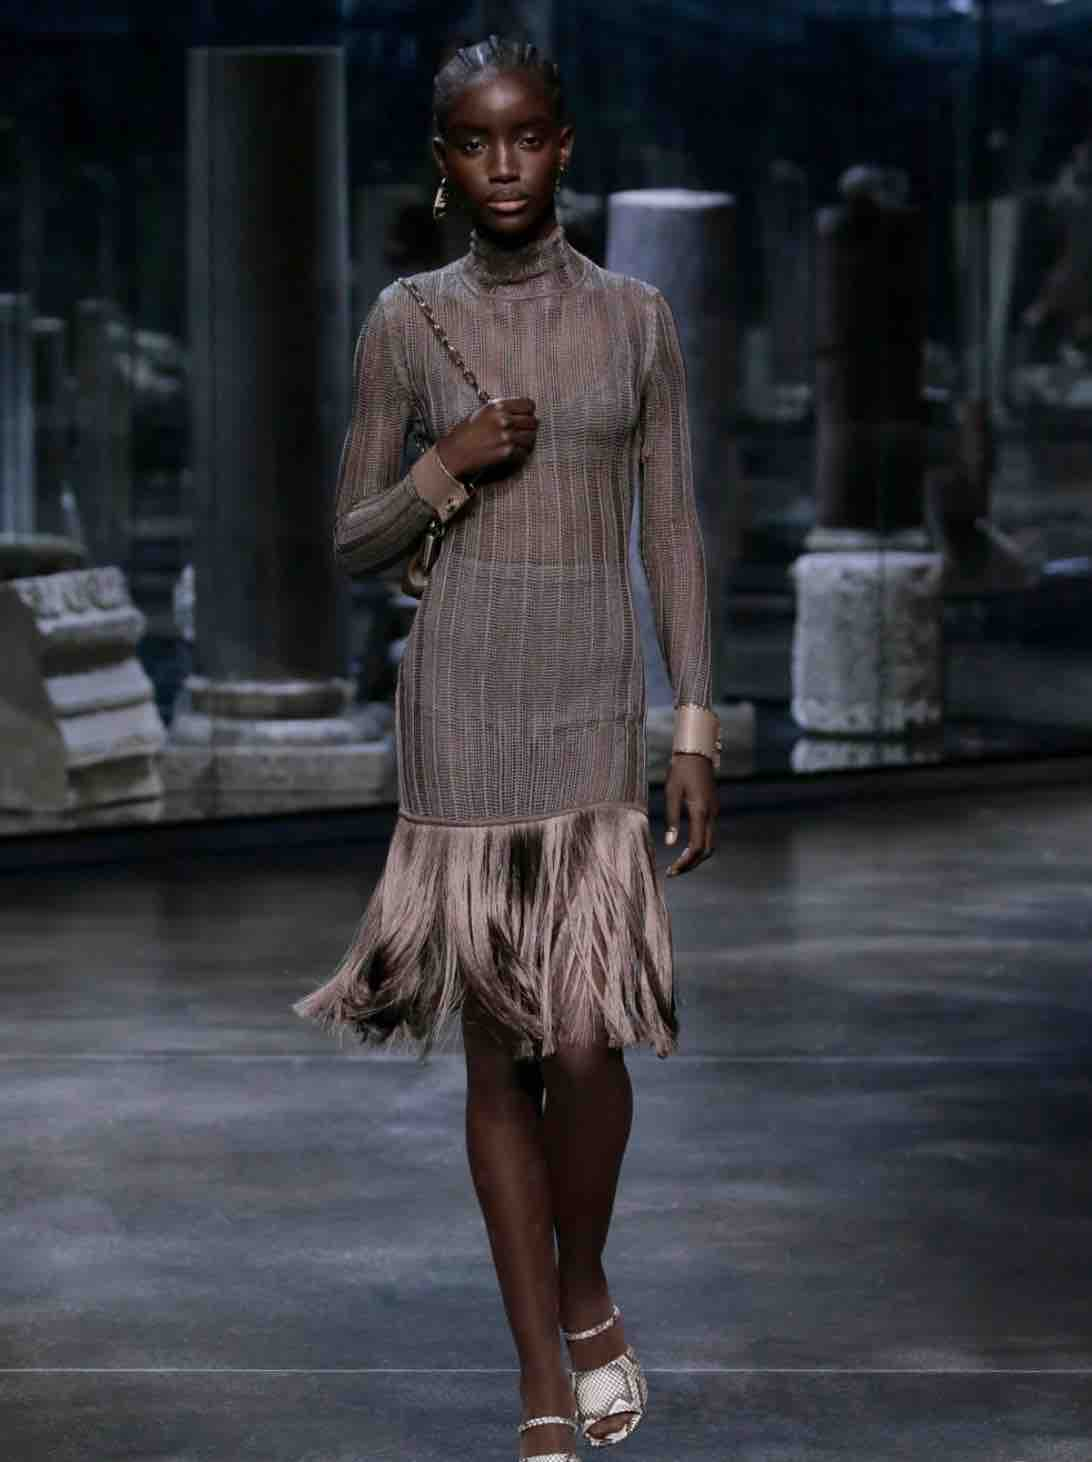 Fringe Is One Of The Style Trends To Shop For Fall 2021